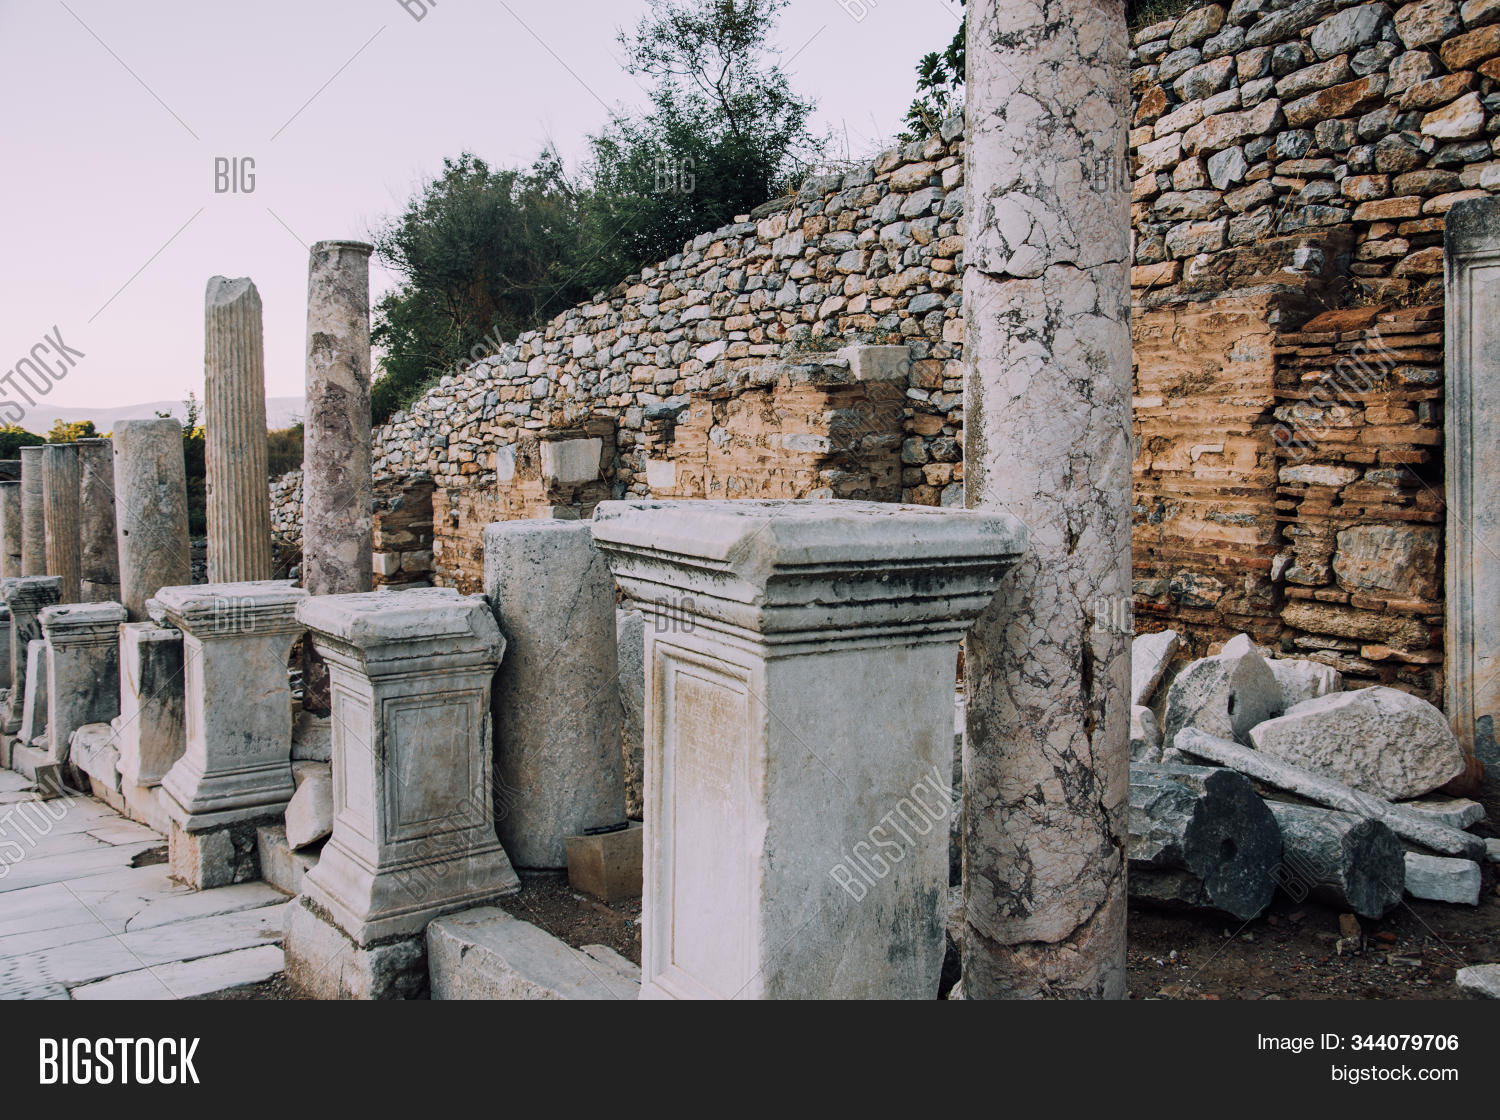 Antique city of Ephesus.Ruins of an ancient city in Turkey.Selcuk, Kusadasi,Turkey.Archaeological site,expedition.Remains of an abandoned ancient Greek city.Antique statues and columns.Place for text.